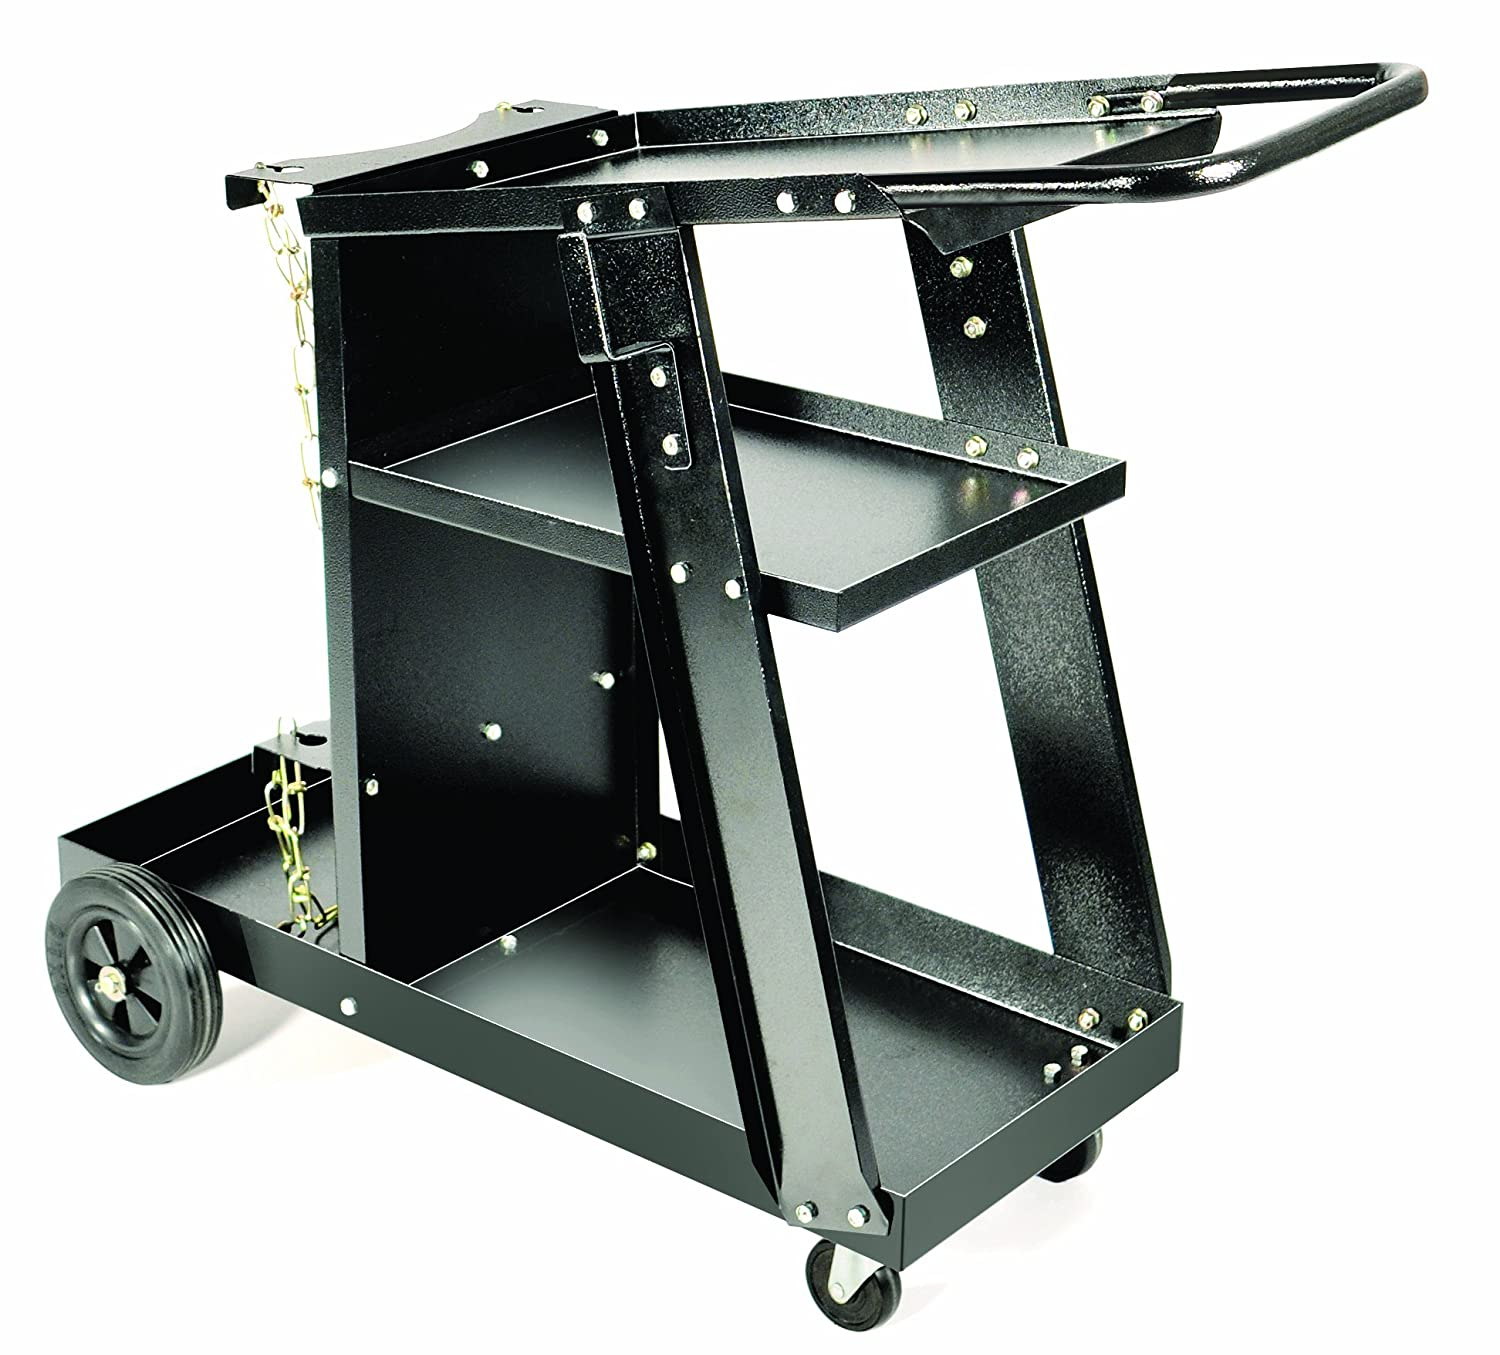 Hot Max WC100 Welding Plasma Cutter Cart